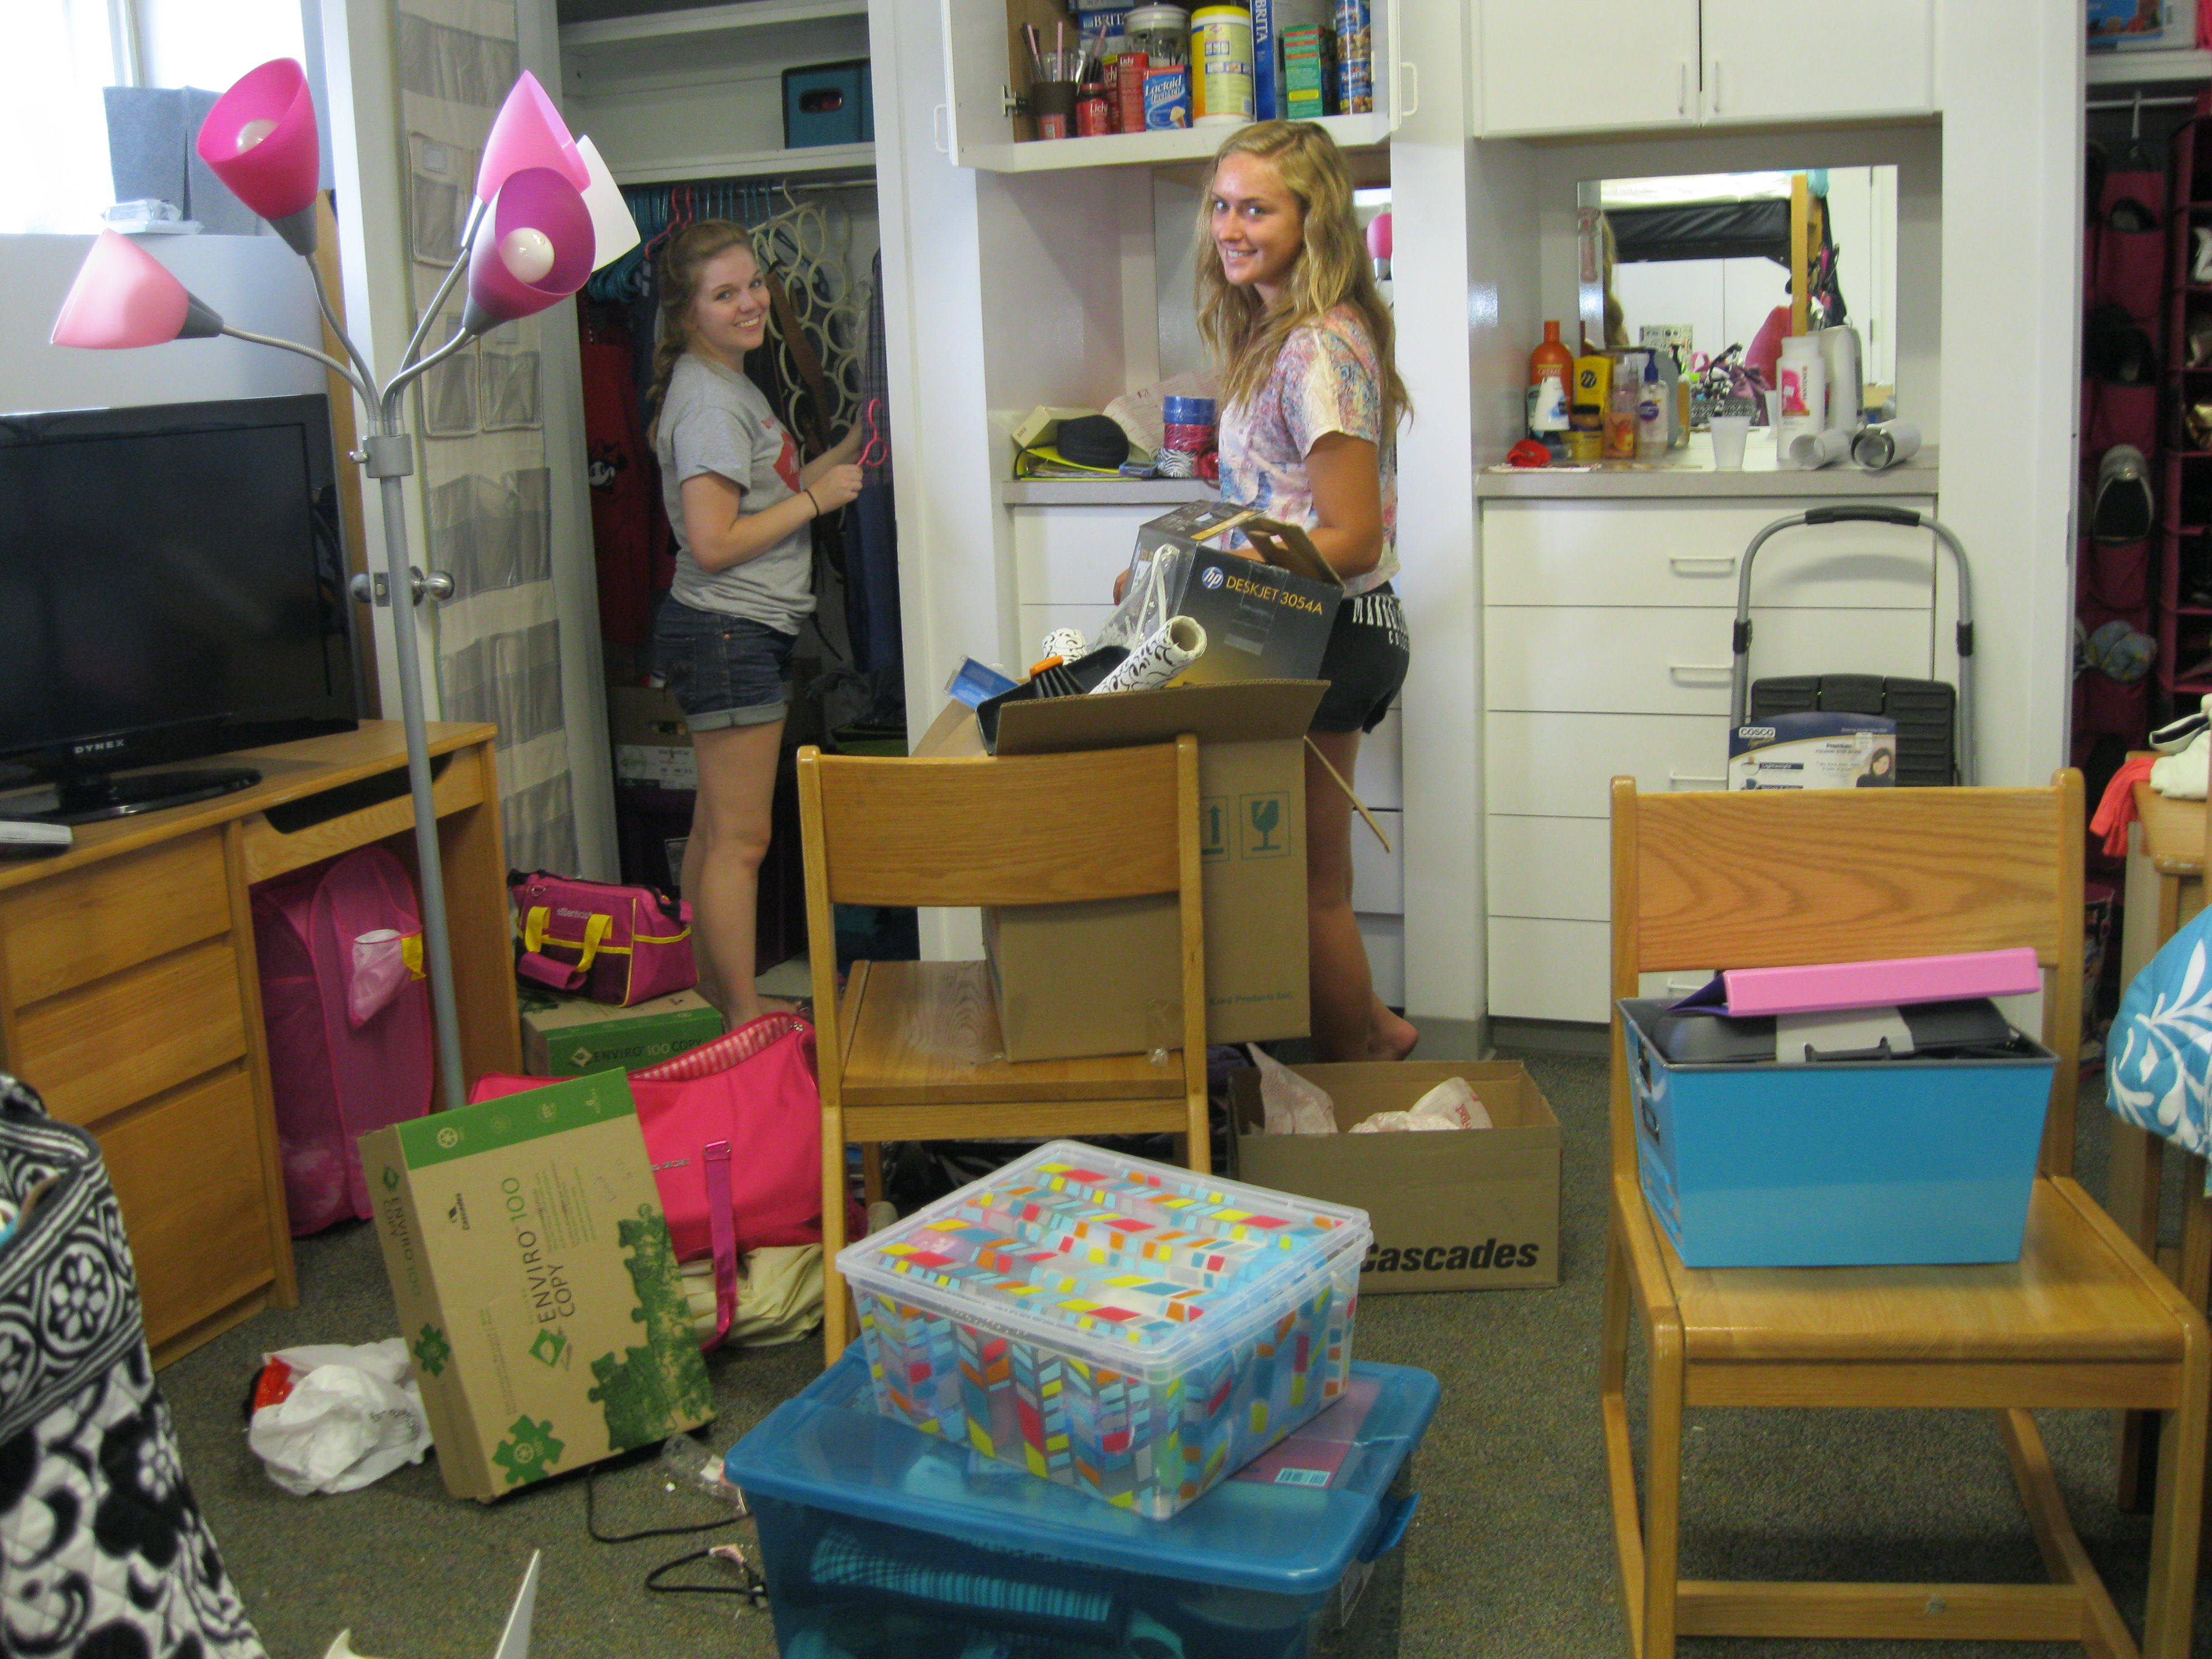 Moving In To The Residence Halls Mville Residence Hall College Liberal Arts College